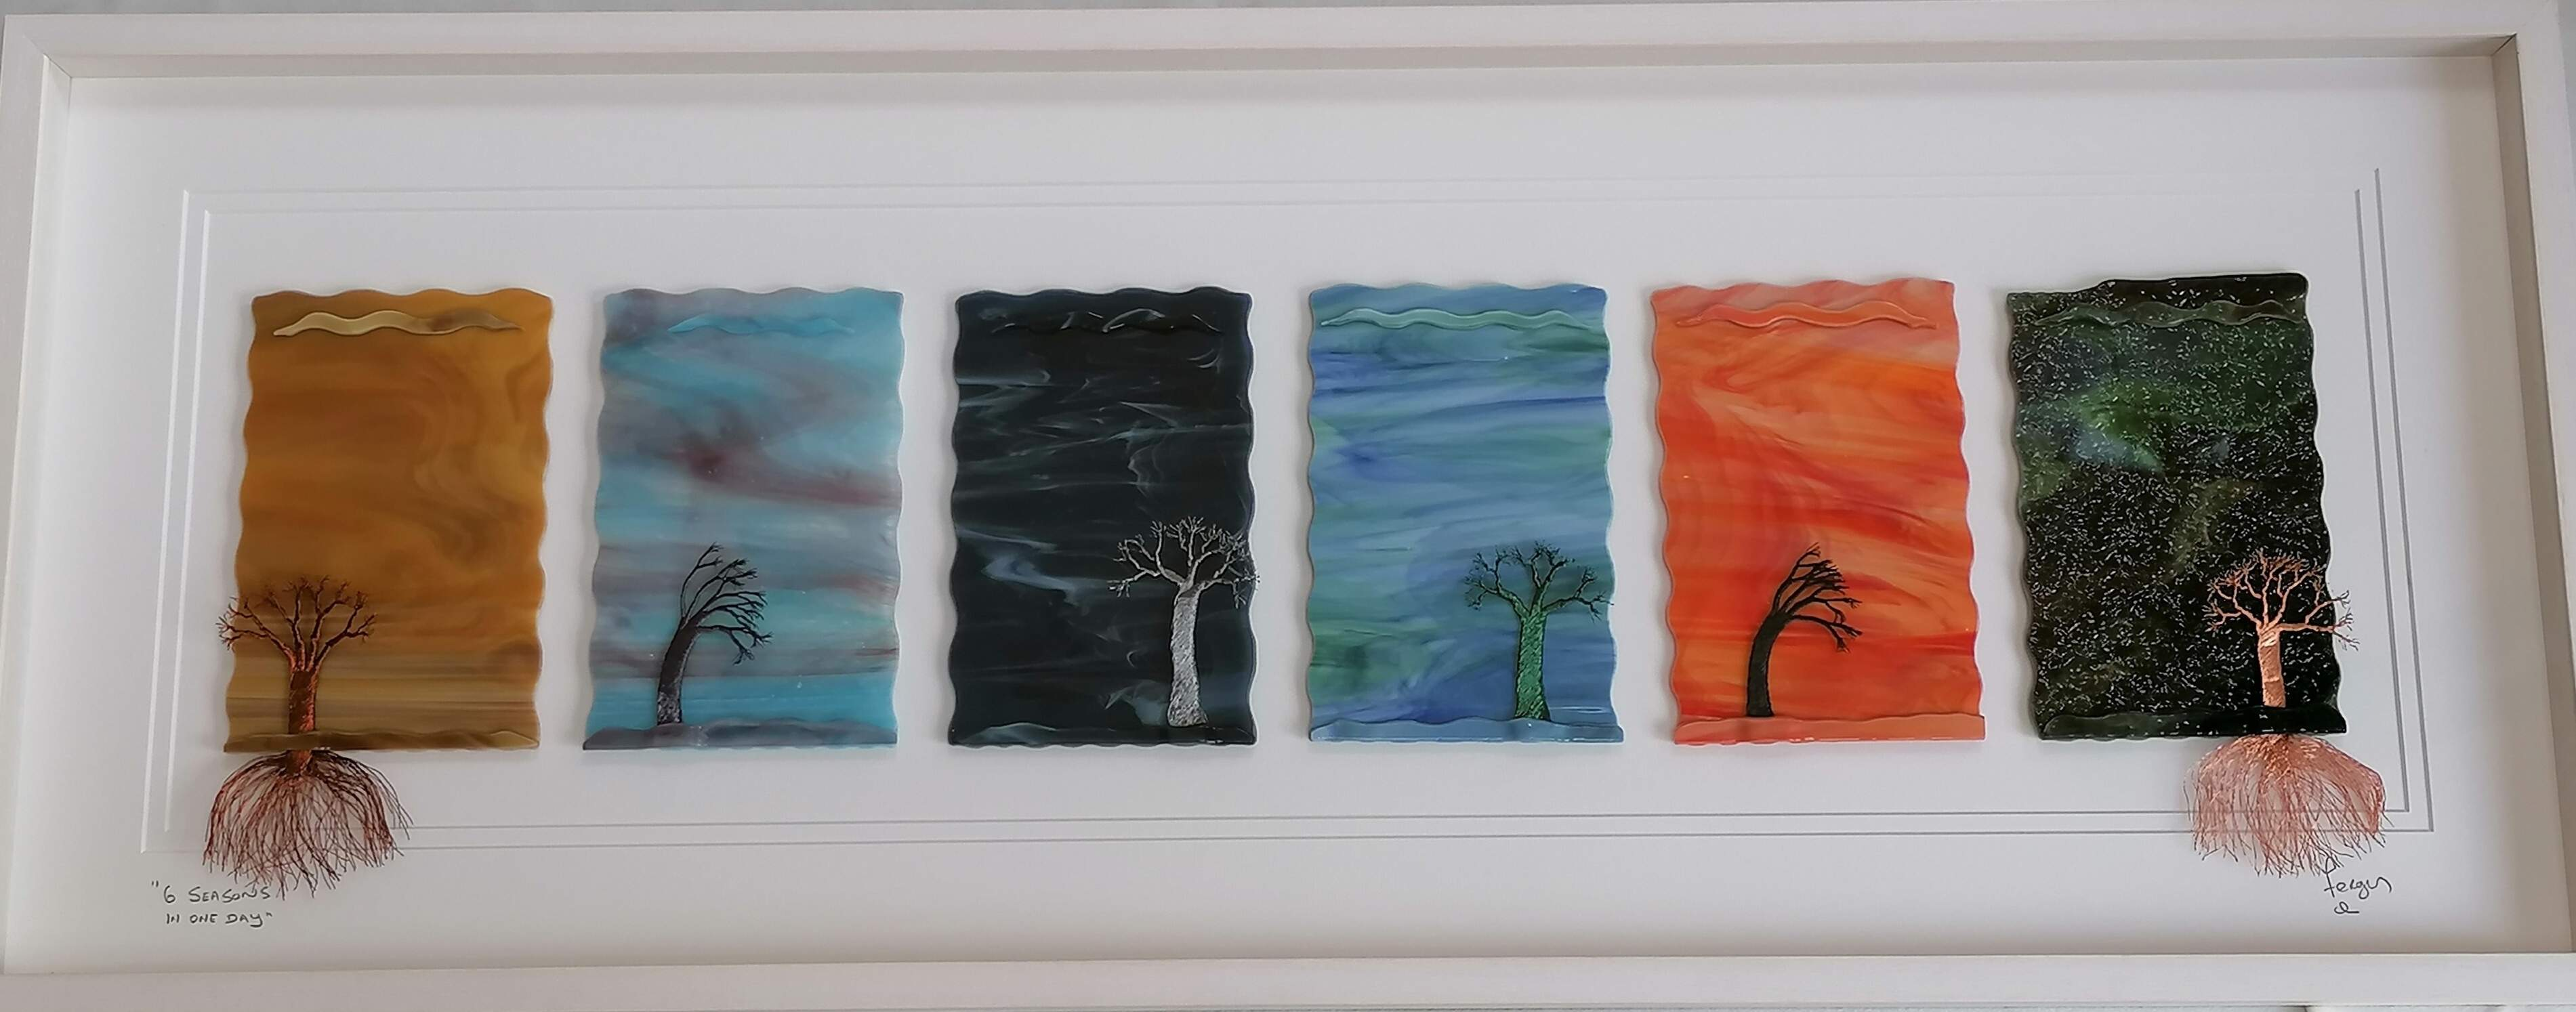 6 Panels of dramatically coloured glass representing Drifting clouds  with copper trees